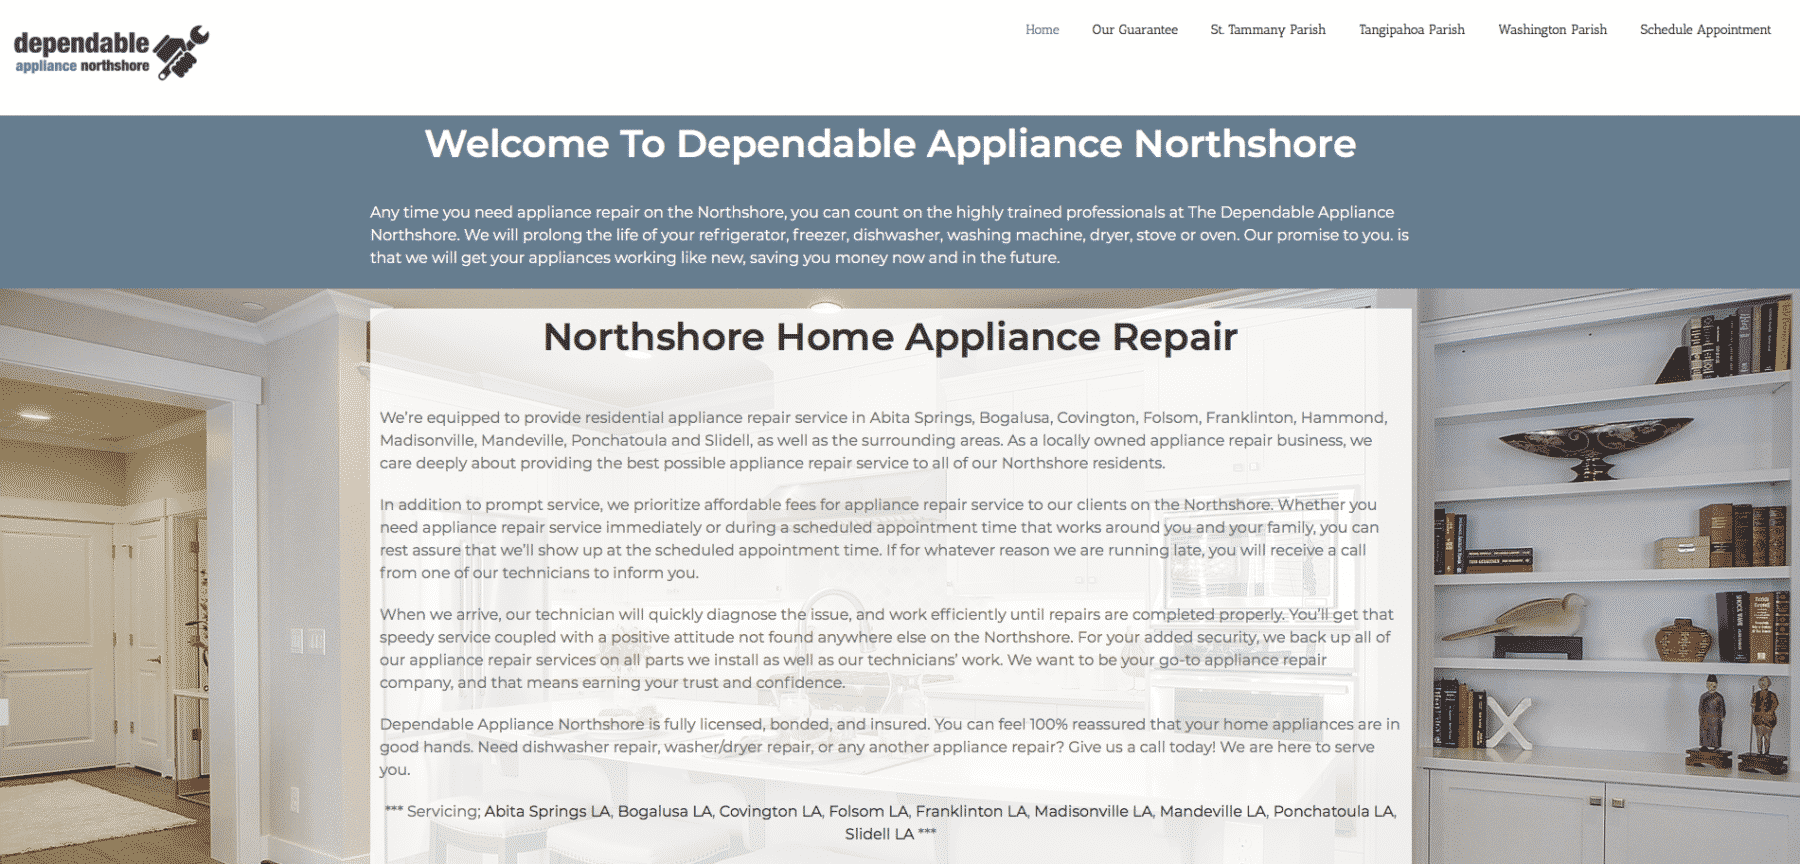 Dependable Appliance Northshore